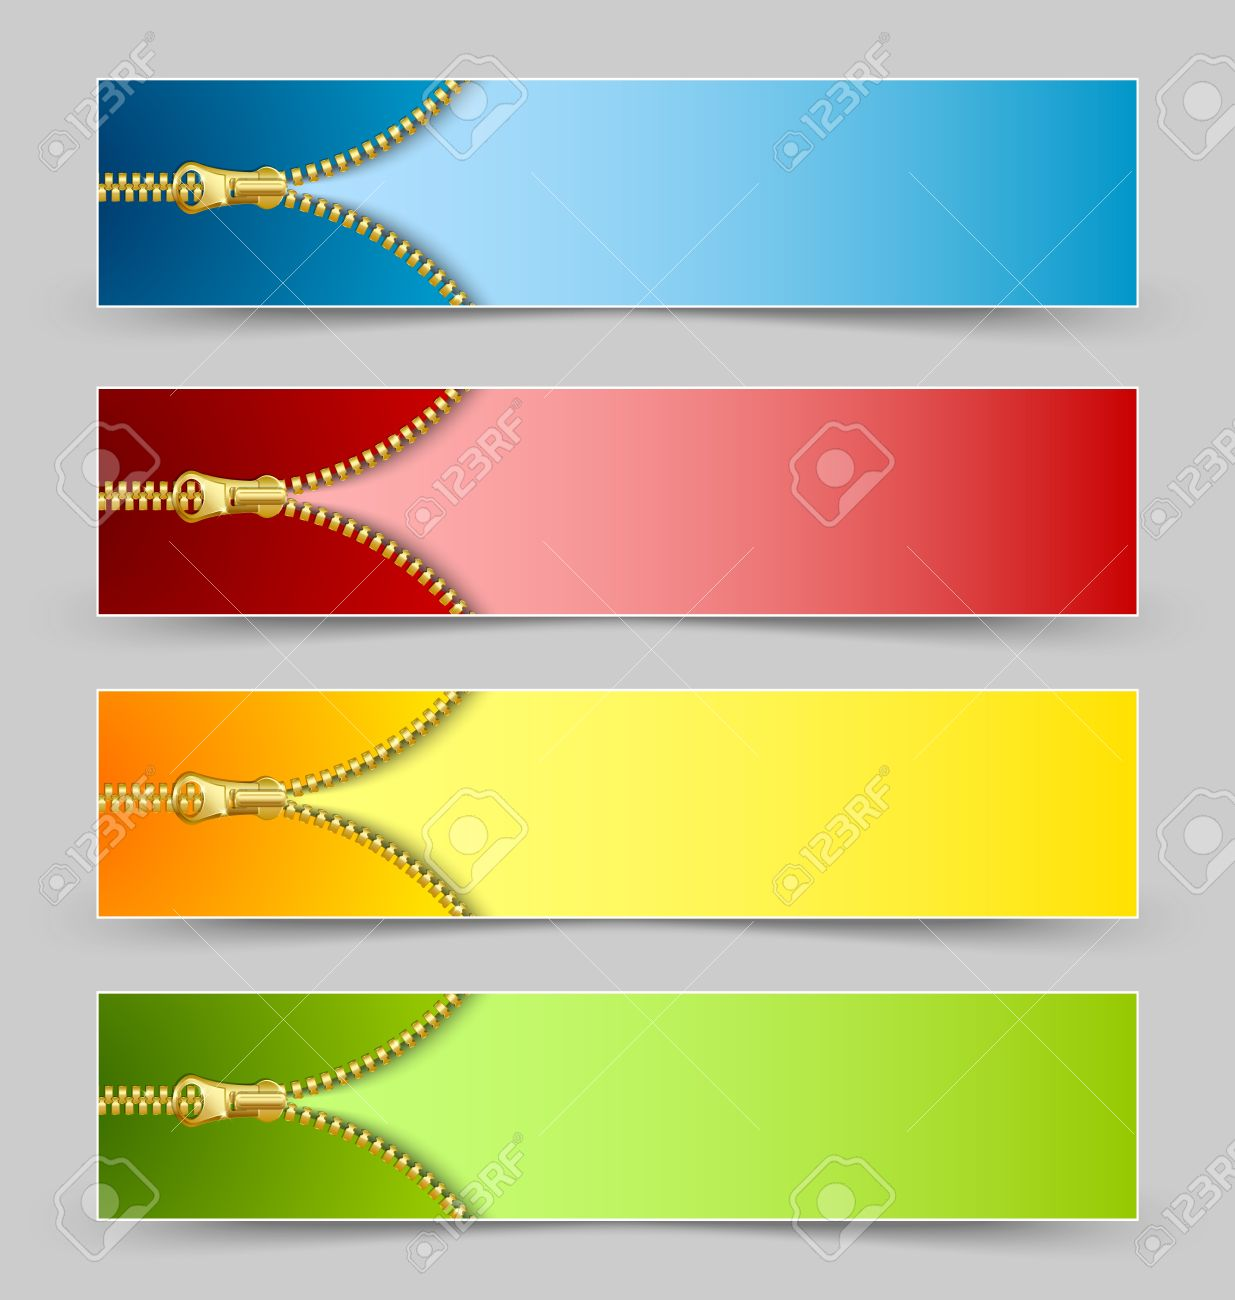 Zipper banners isolated on grey background Stock Vector - 14487061